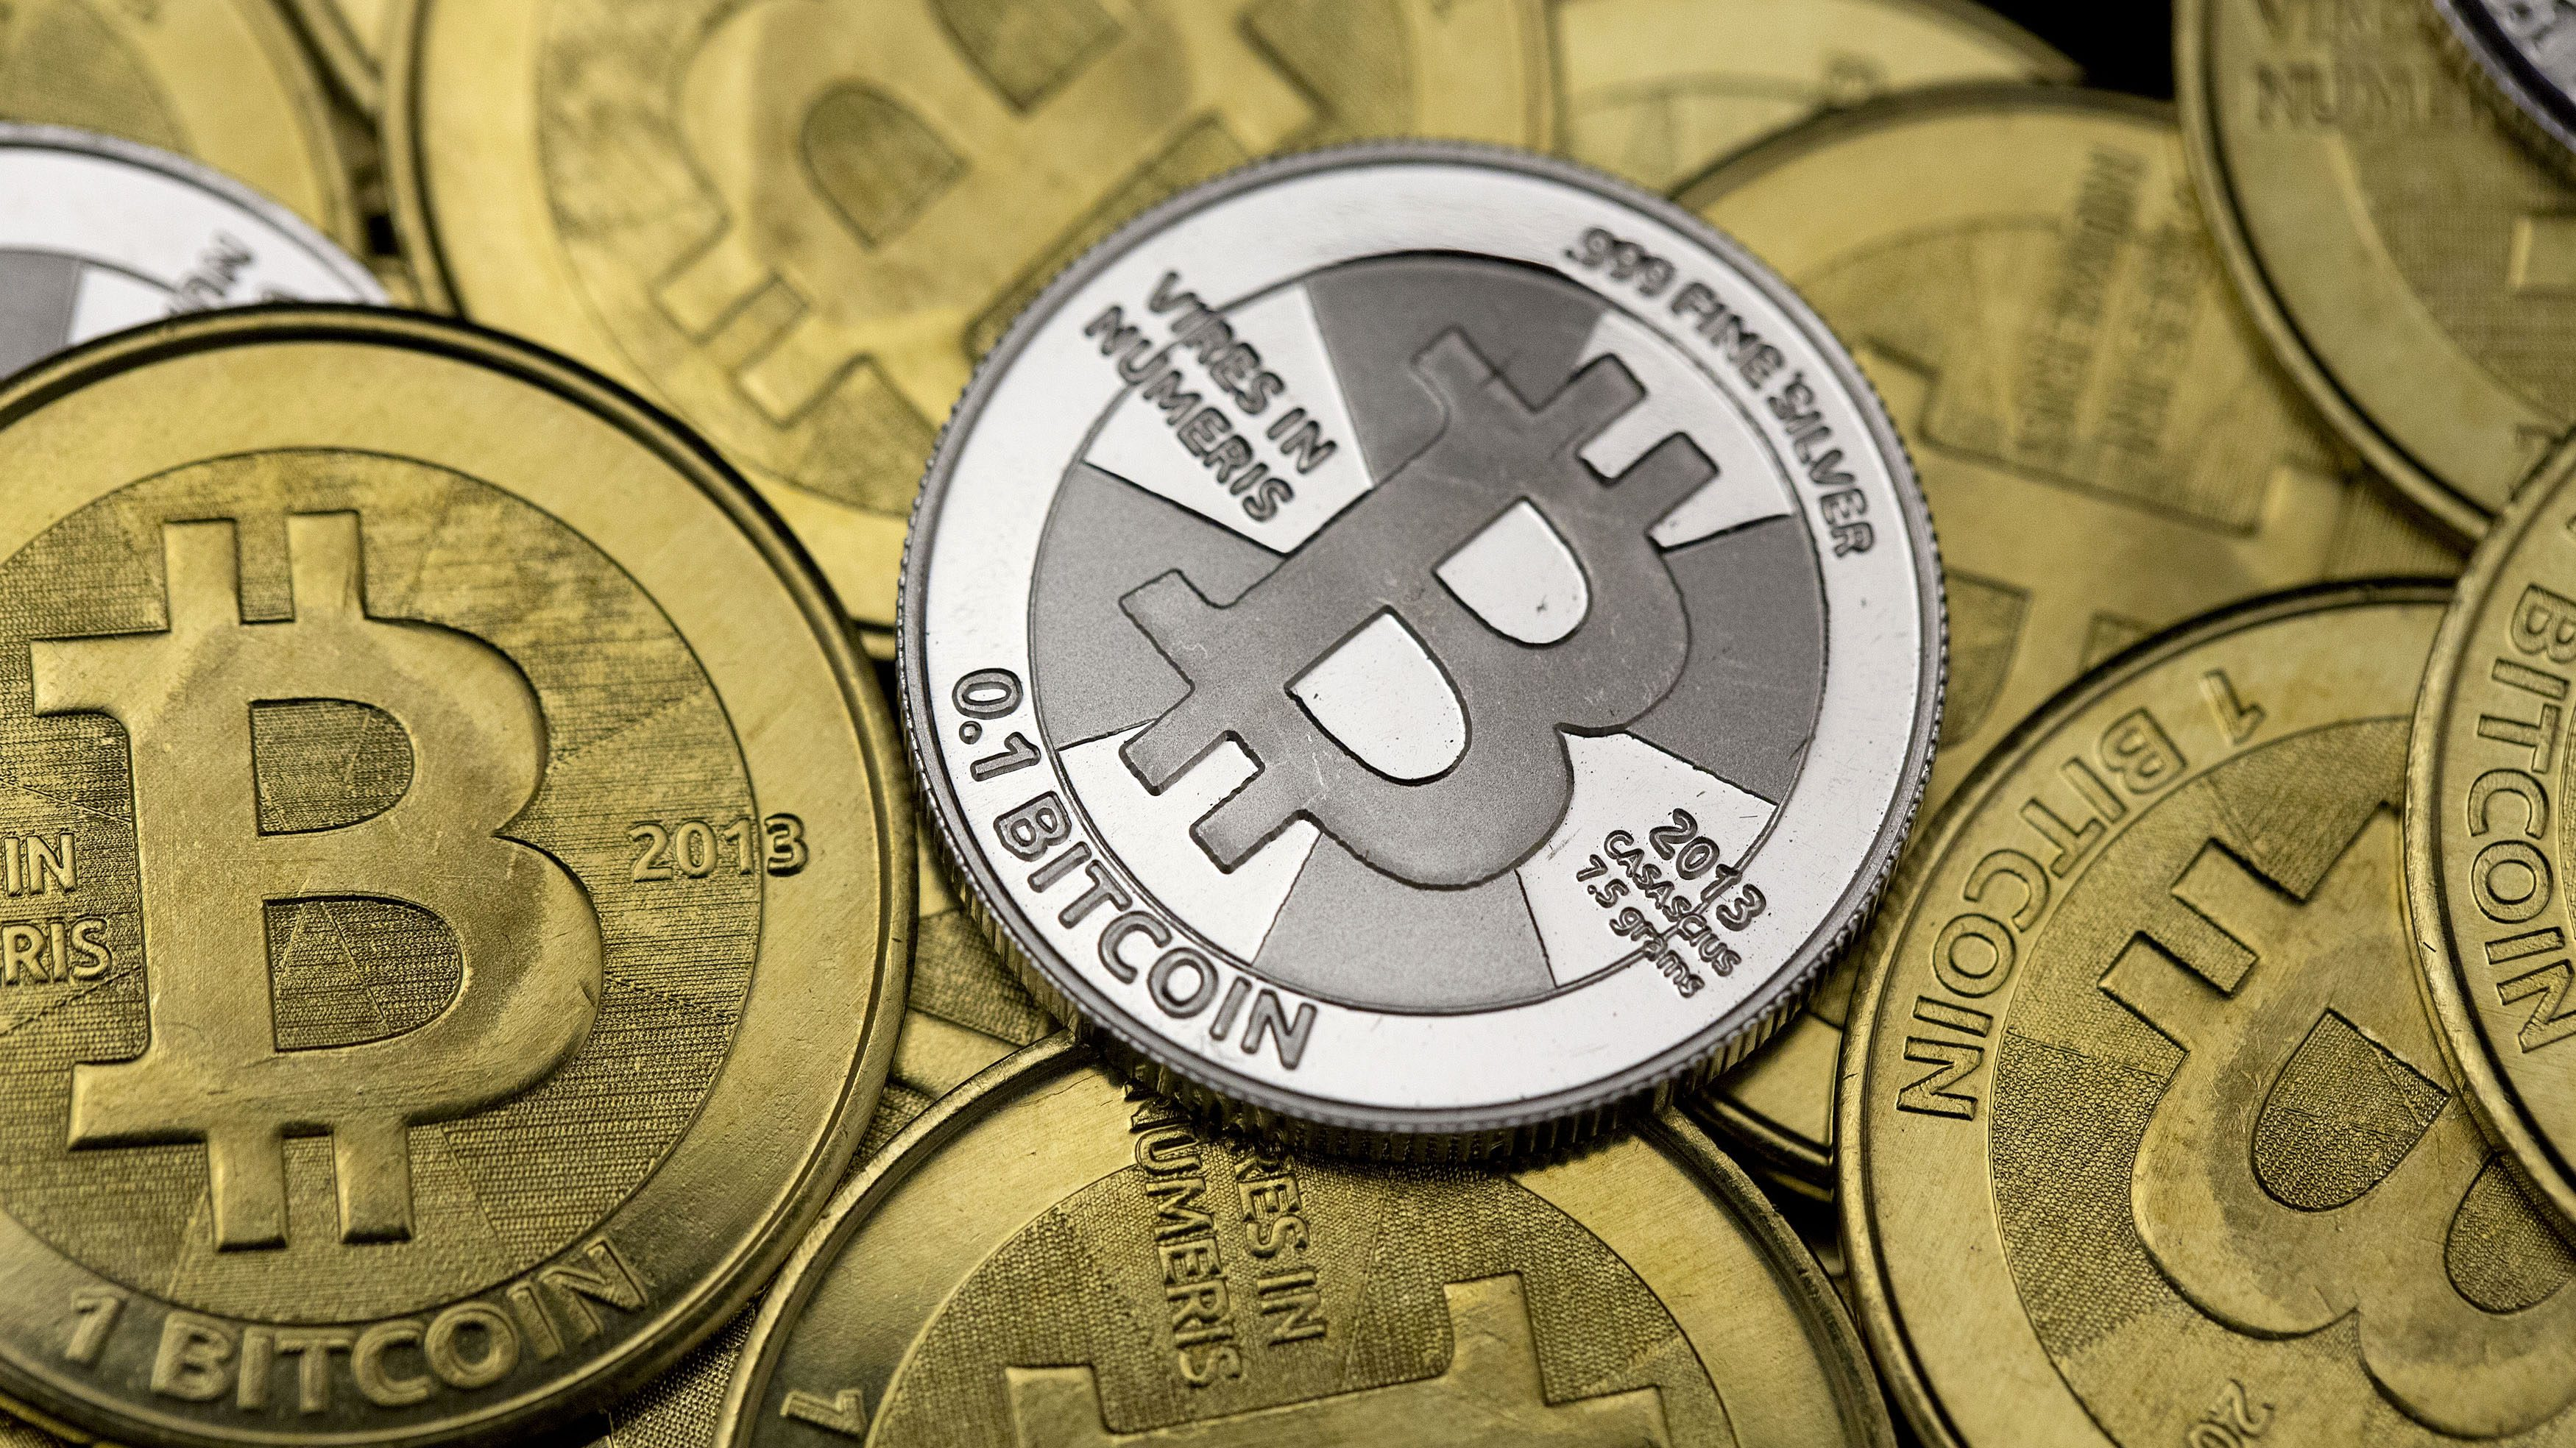 Crypto Currency: A bright future or just a fad?